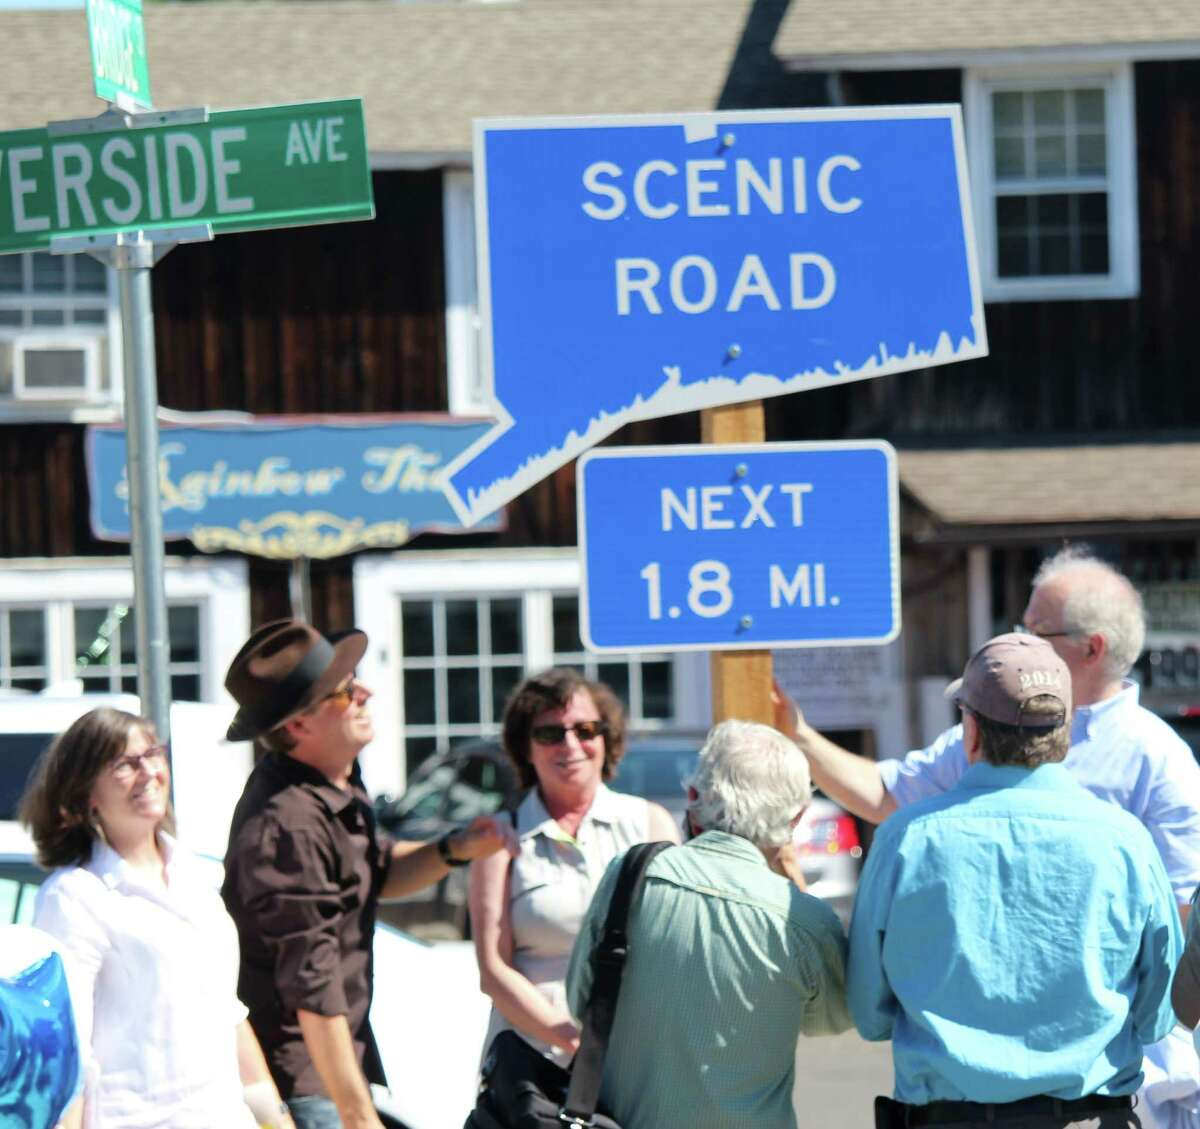 Morley Boyd and John Suggs admire the nelwy implemented scenic road sign on Route 136. The 1.8 mile scenic road, only the second in Westport, starts at the west end of the Bridge Street Bridge, officially known as the William F. Cribari Memorial Bridge.The designation runs until Route 136 intersects with the Post Road and Compo Road S.